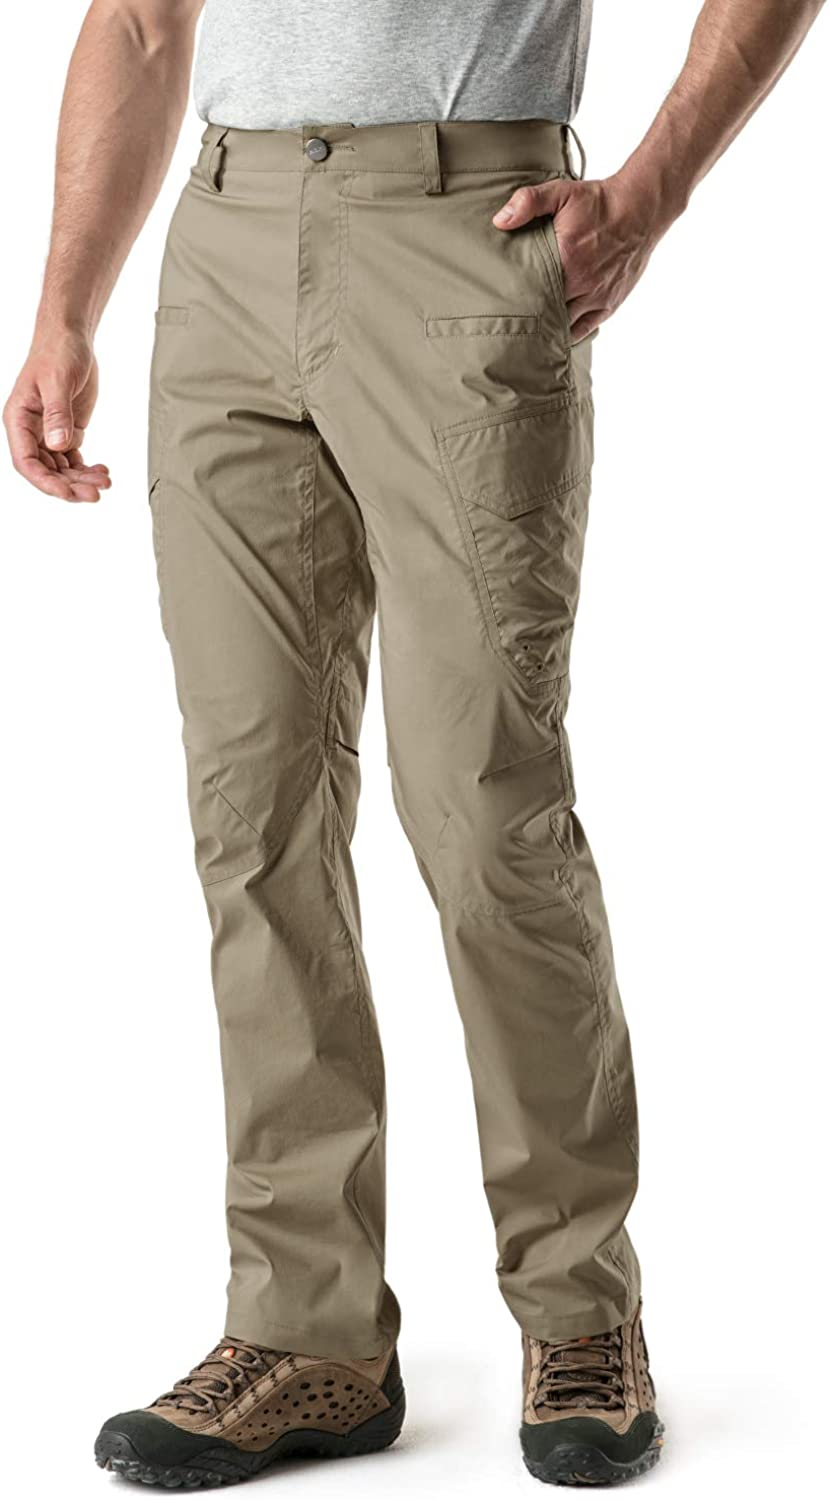 CQR Men's Hiking Pants, Water Repellent Outdoor Pants, Lightweight Stretch Cargo/Straight Work Pants, UPF 50+ Outdoor Apparel